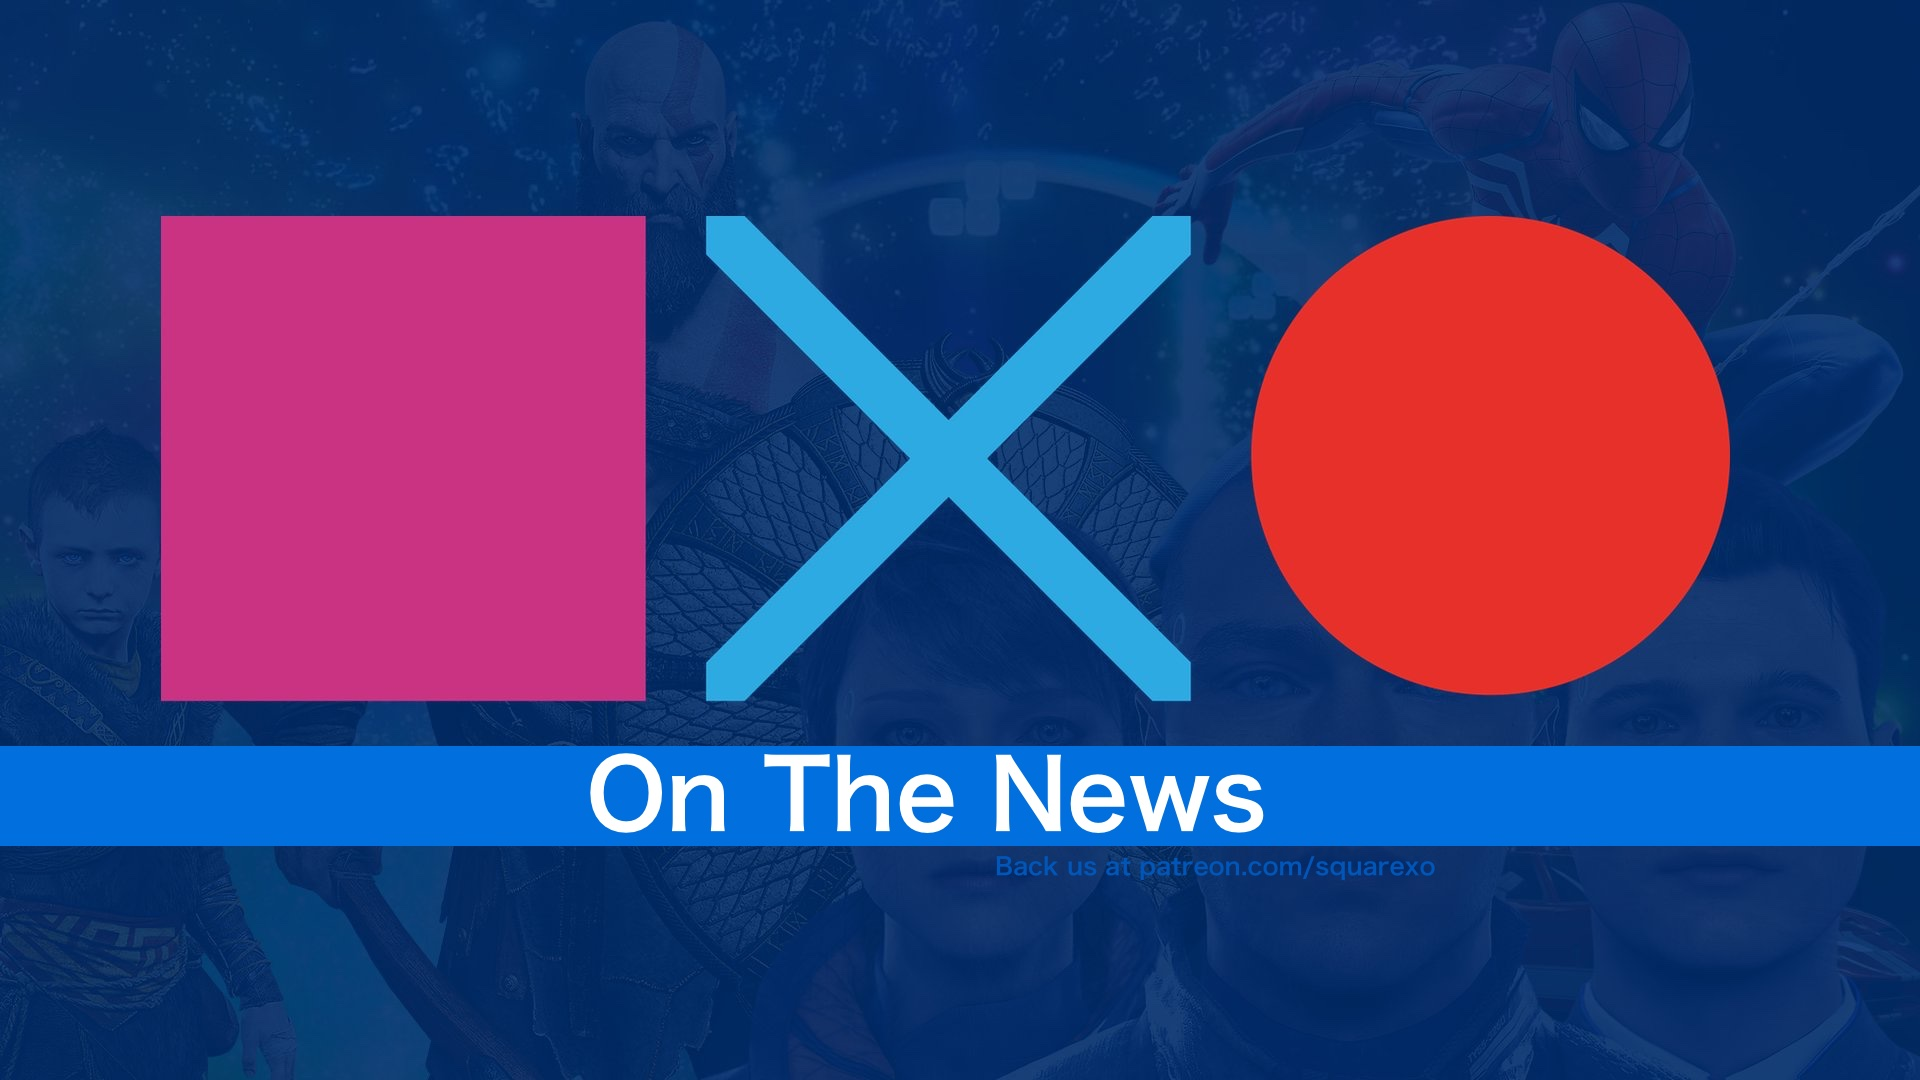 PlayStation 4 Sells 91.6 Million Units Worldwide   SquareXO On The News